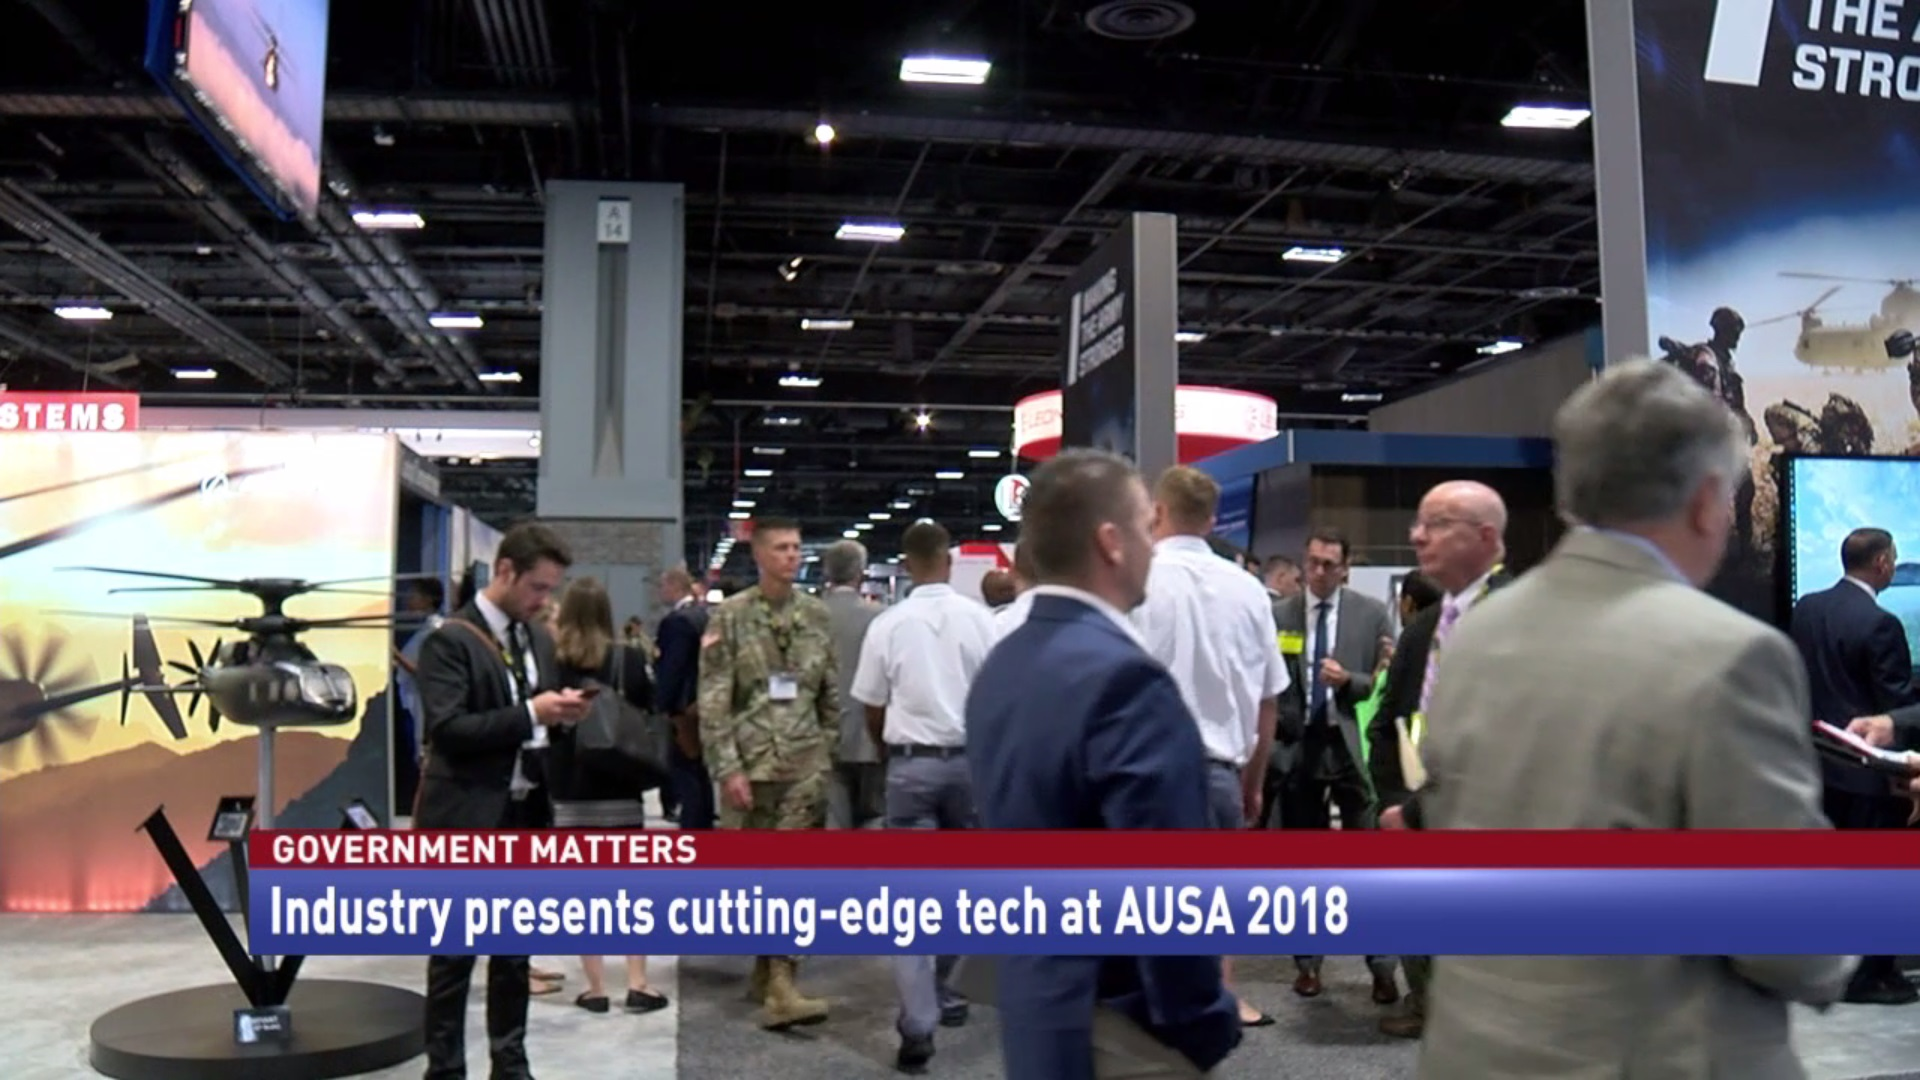 Industry presents cutting-edge tech at AUSA 2018